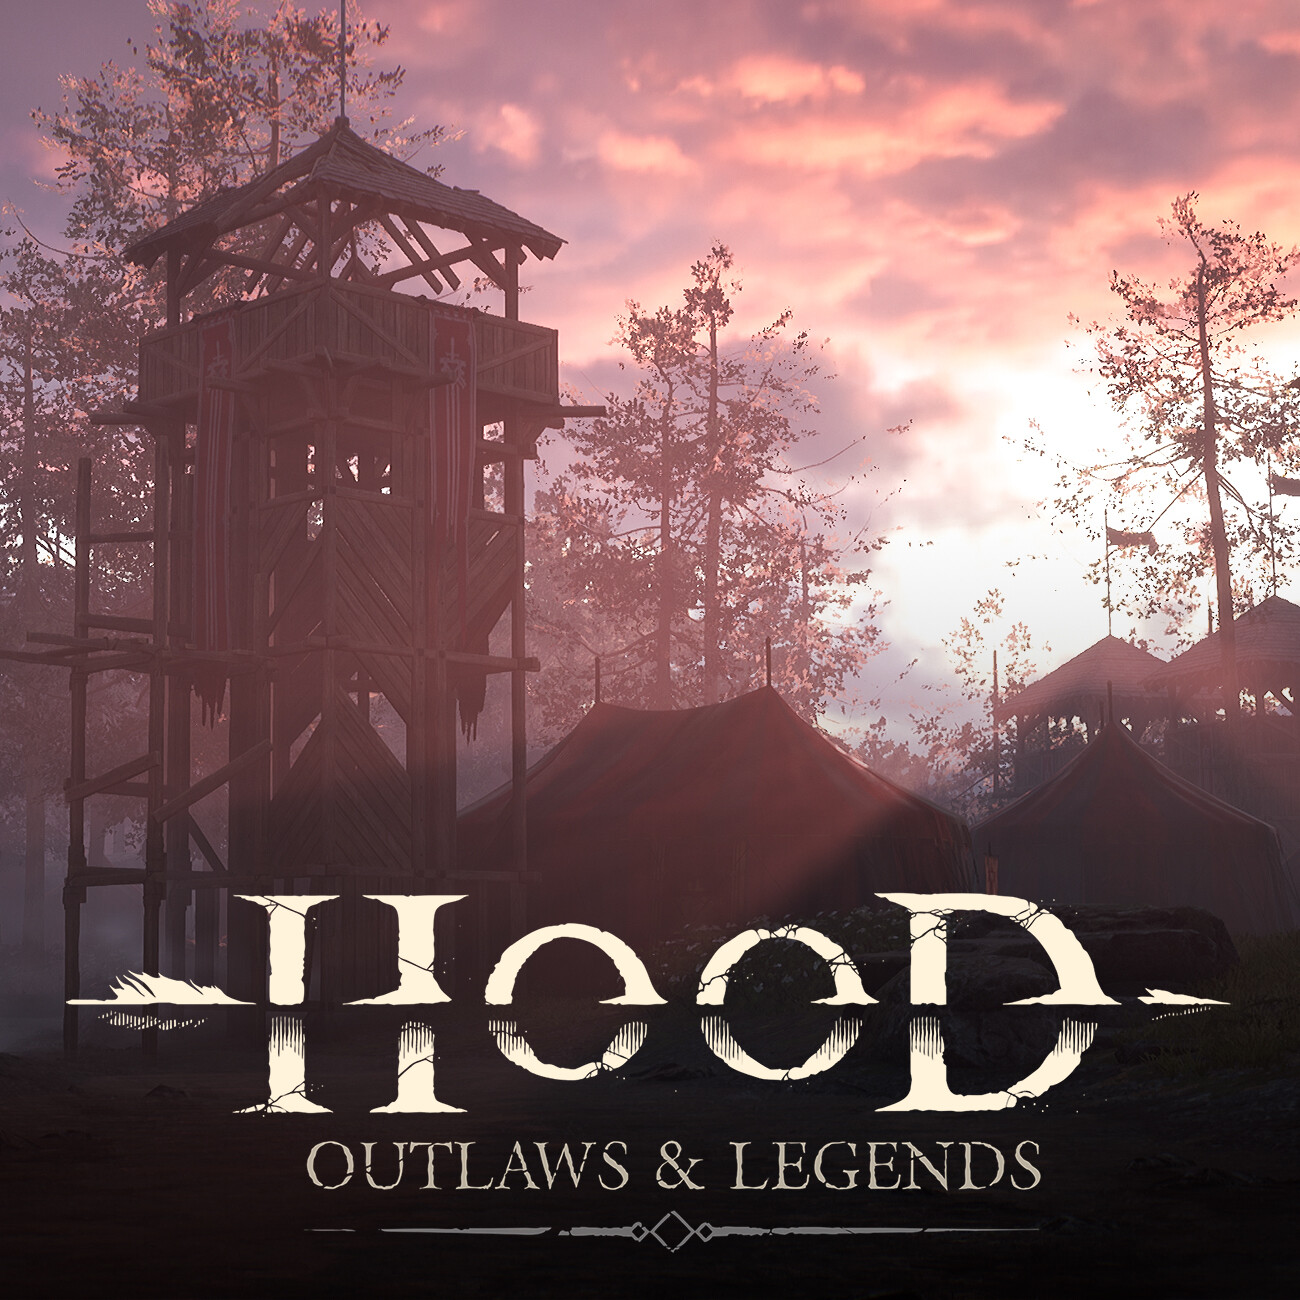 Hood: Outlaws & Legends - Outpost Lighting